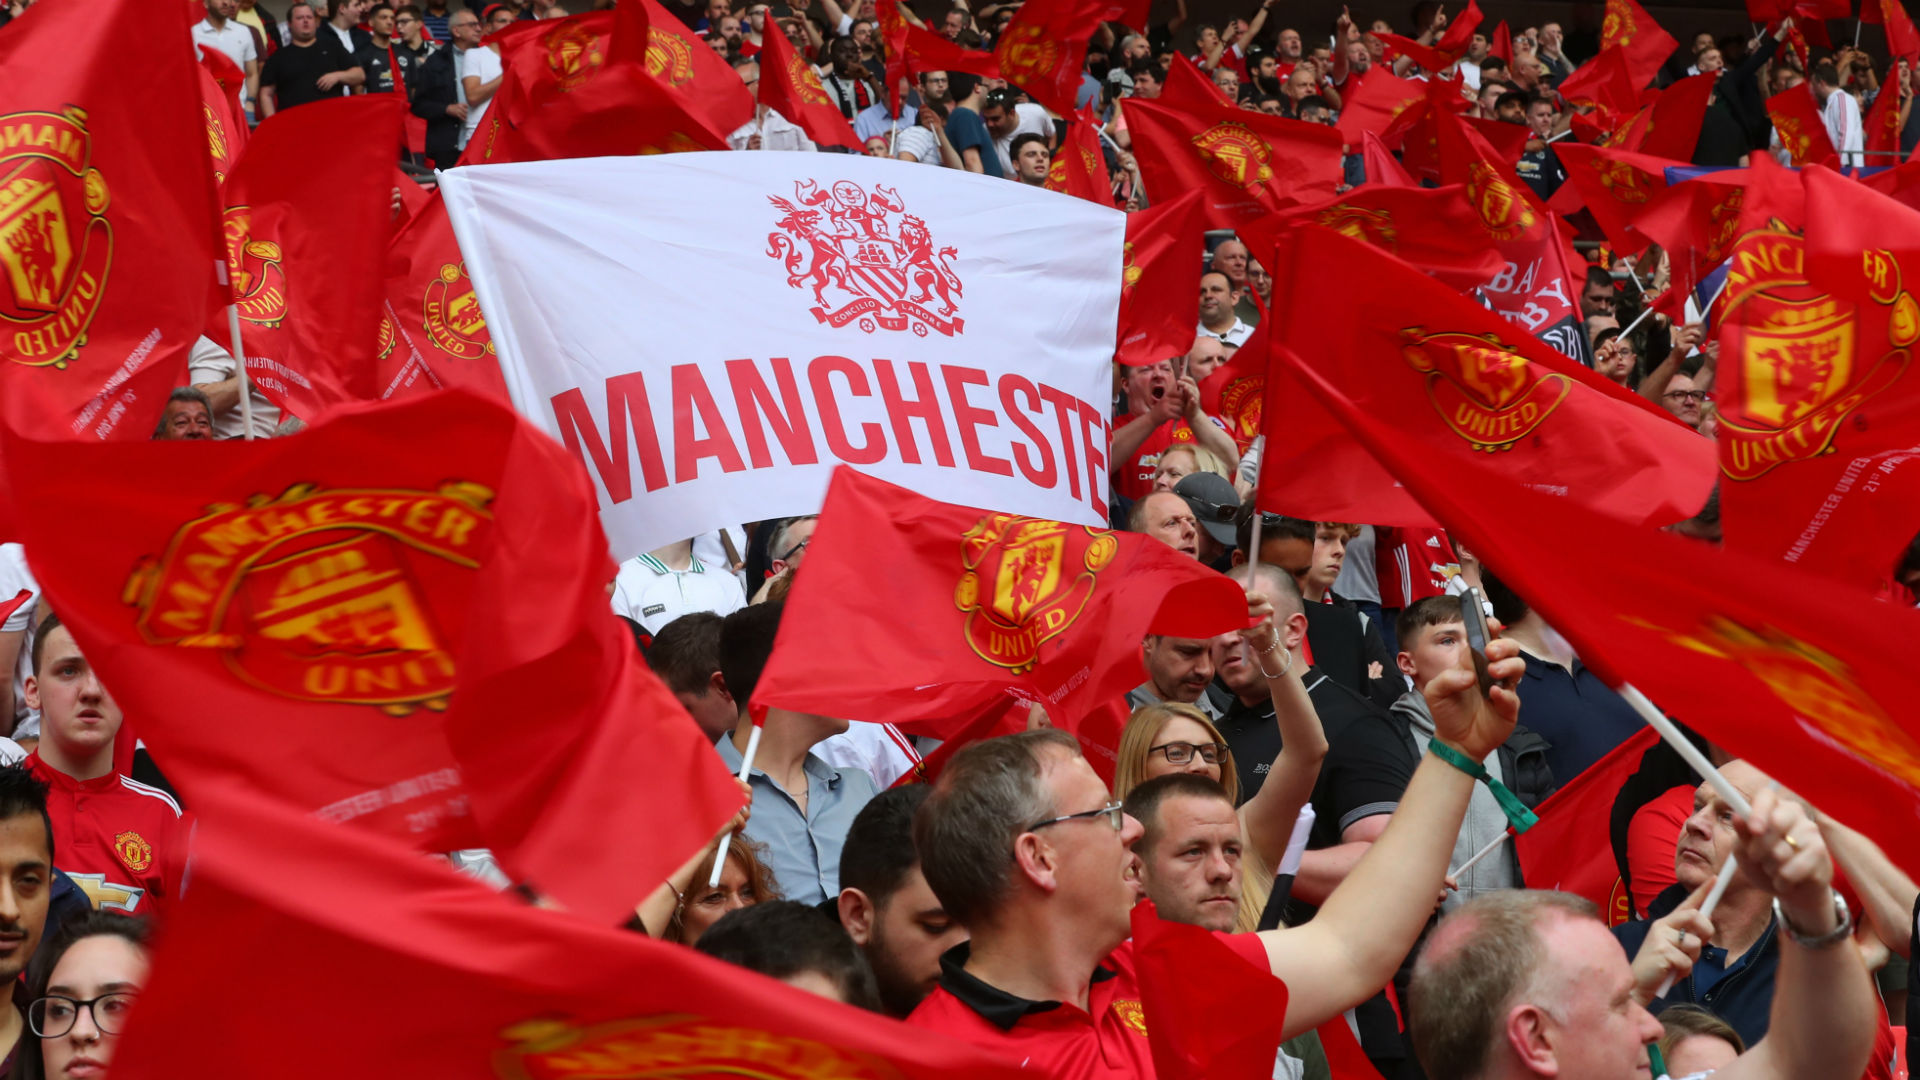 Manchester United Announce Partnership With Icici Bank